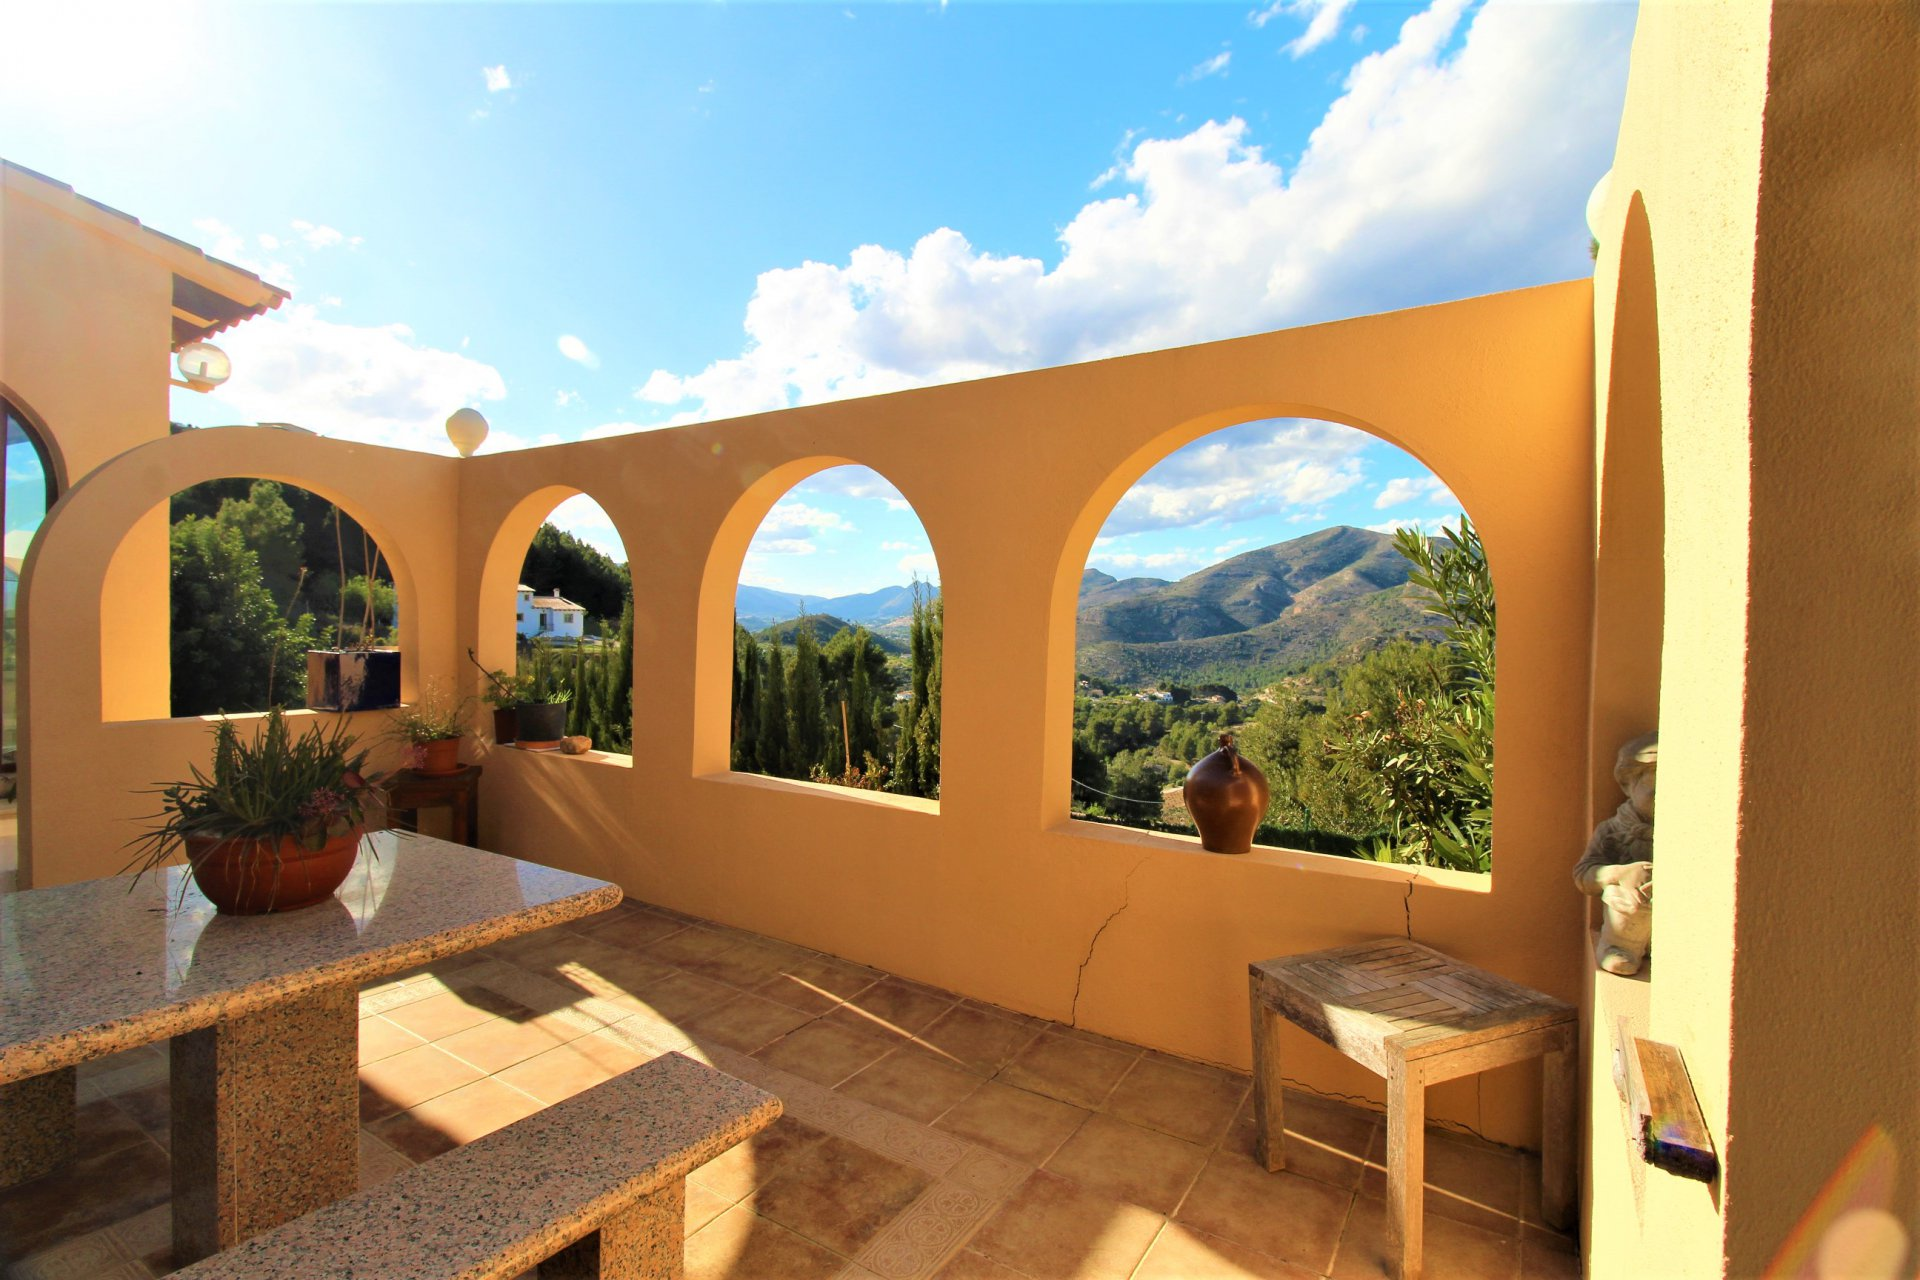 4-bedroom villa with panoramic mountain views